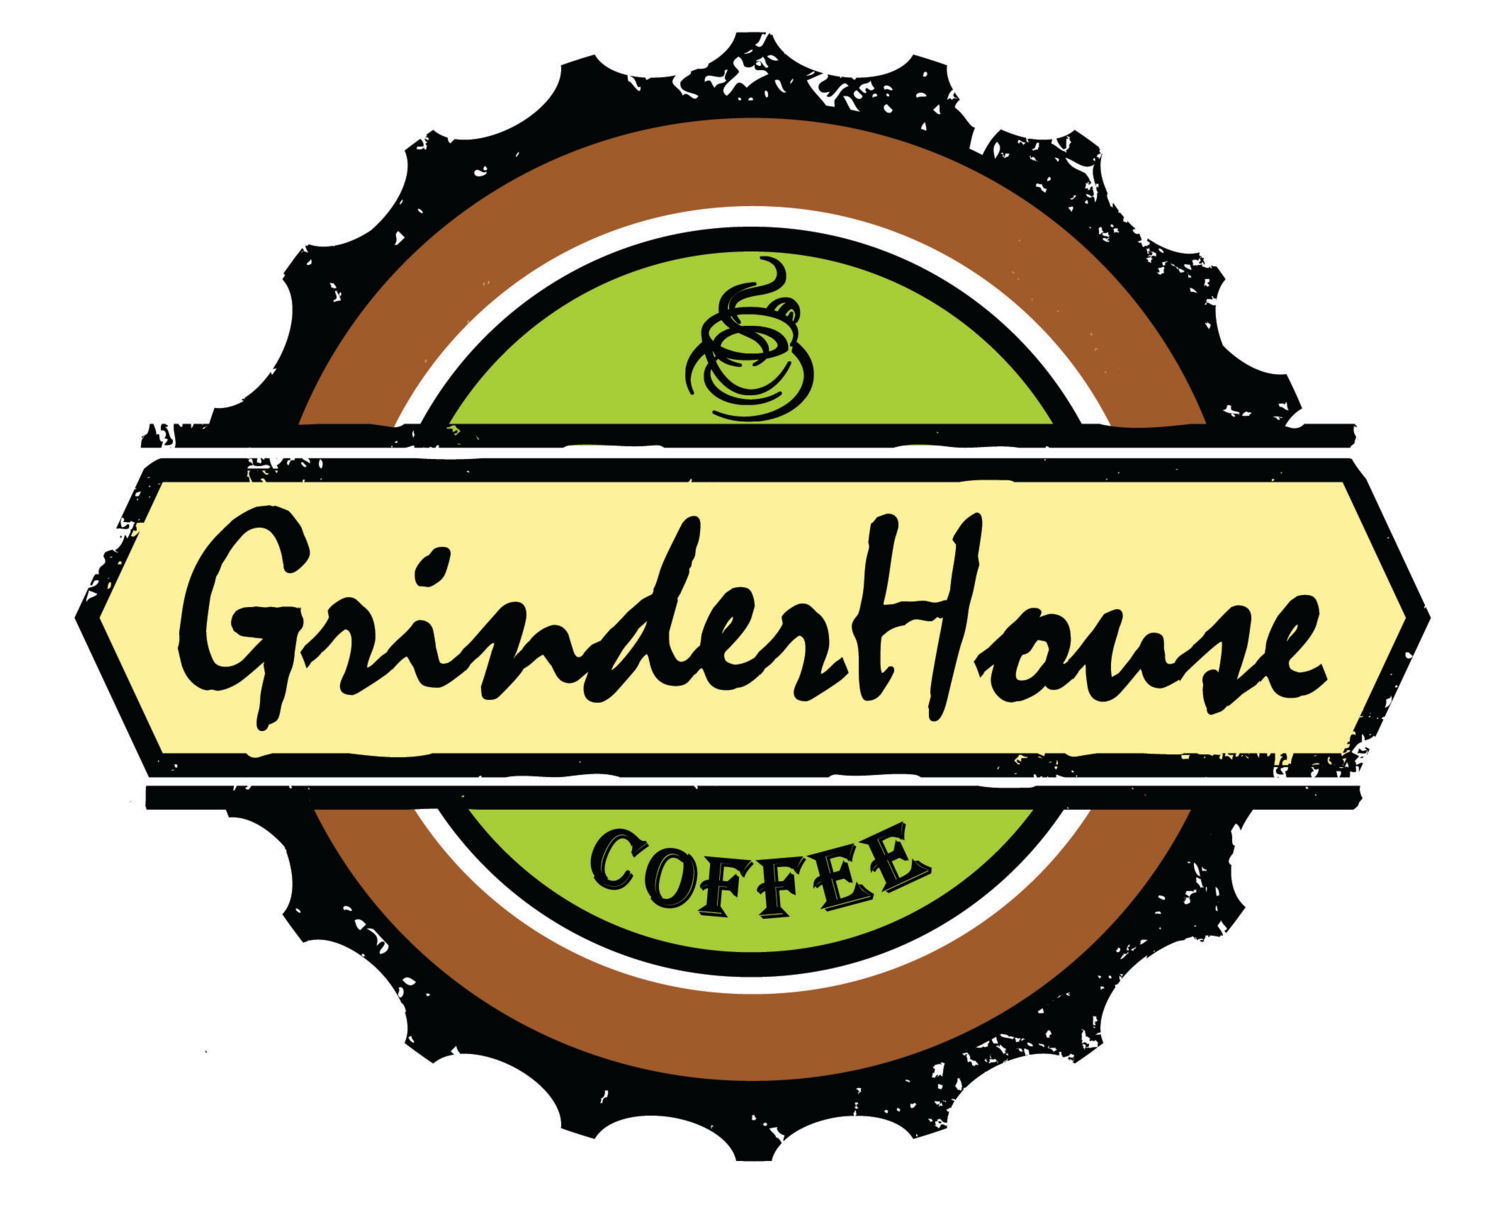 Grinder House Coffee Shop, Inc.